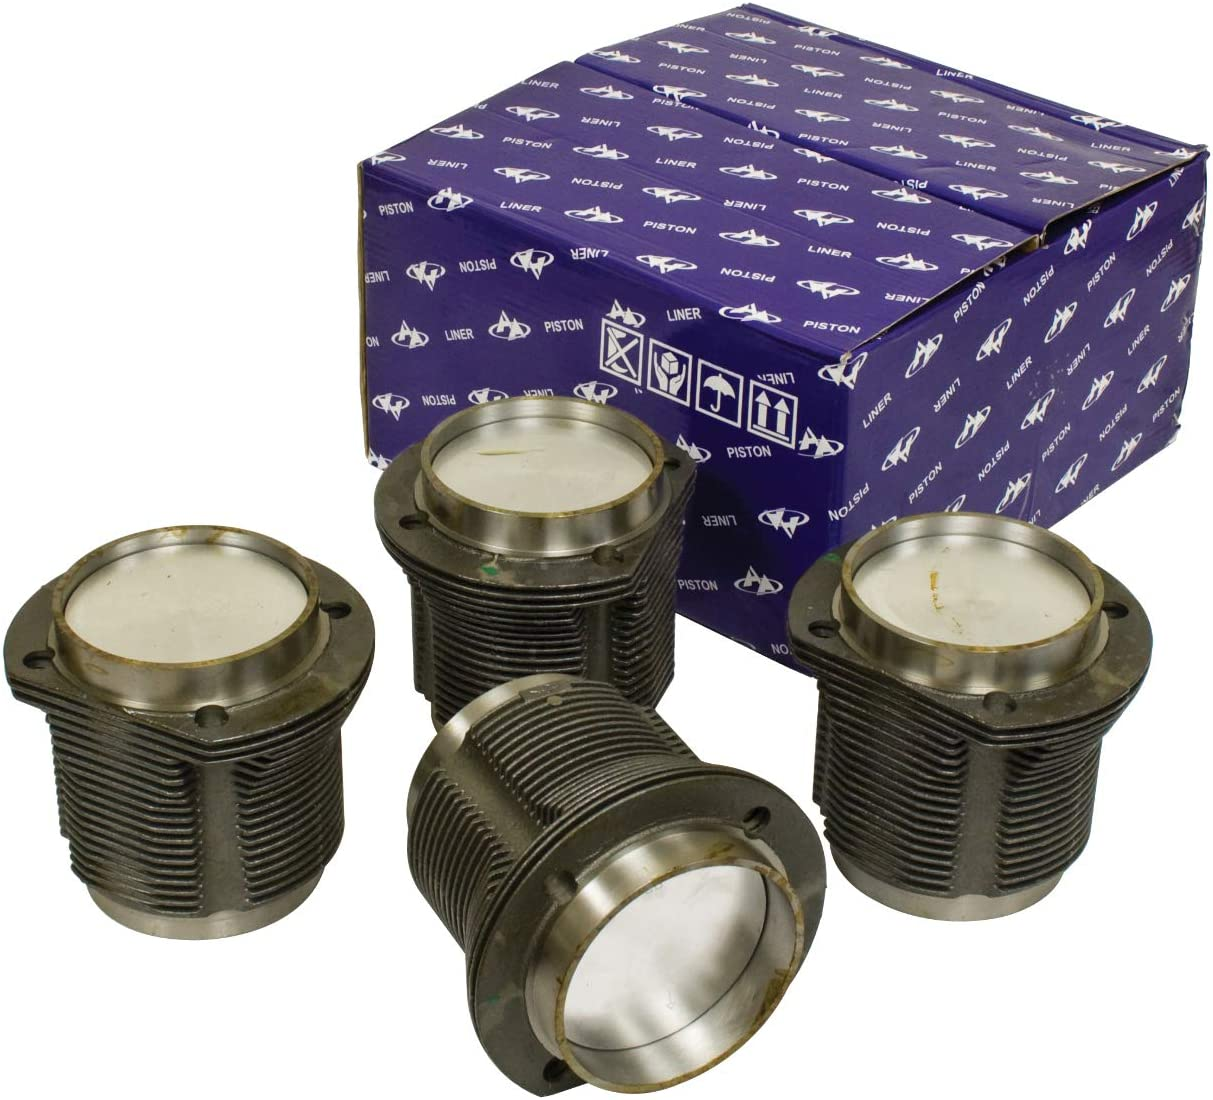 90.5 X 69 Piston Clearance SALE! Limited time! Max 53% OFF Cylinder 1776cc Cast Pistons Kit Compatibl